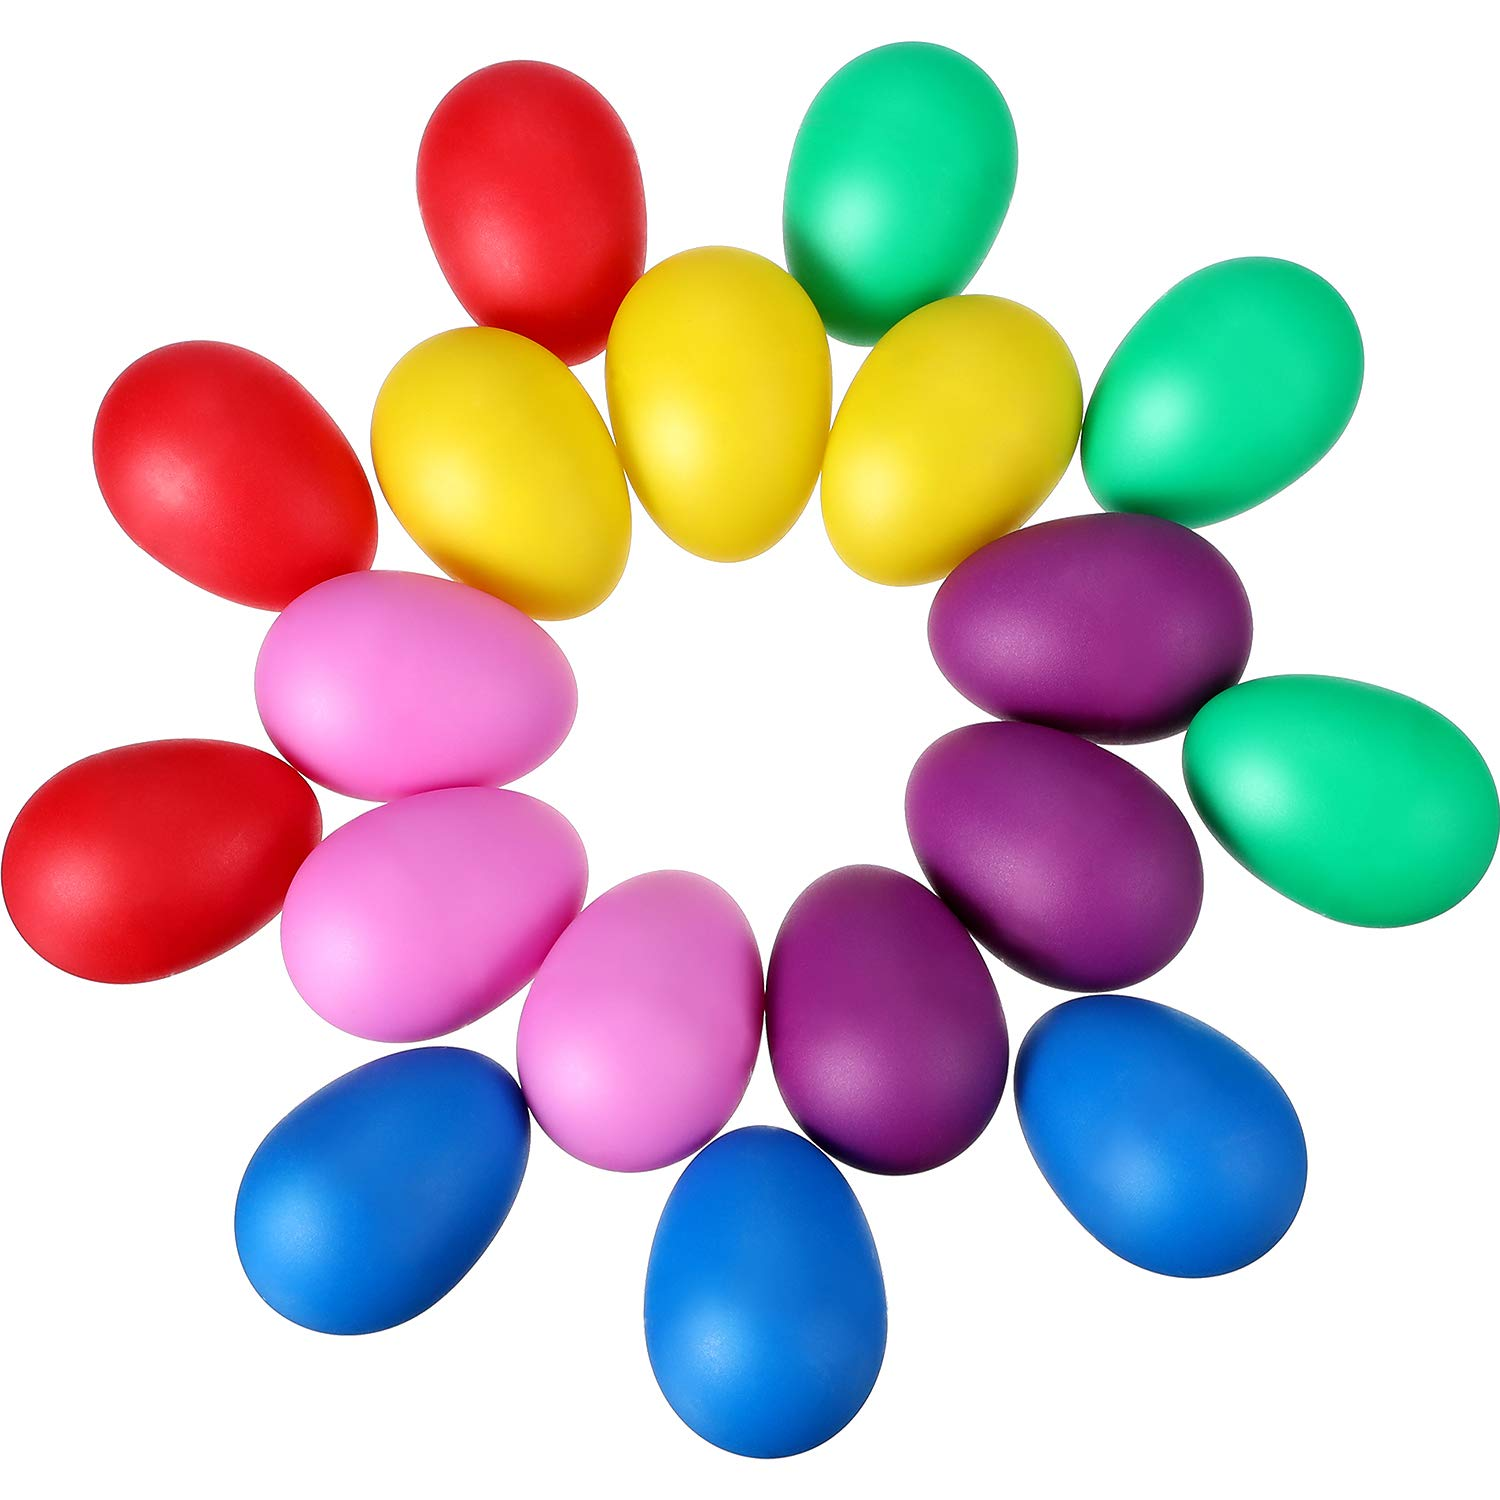 6 Colors Hestya 18 Pieces Easter Eggs Colorful Maracas Eggs Plastic Egg Shakers Set Maracas Eggs Shakers for Easter Party Bag Fillers Party Favors Musical Toys